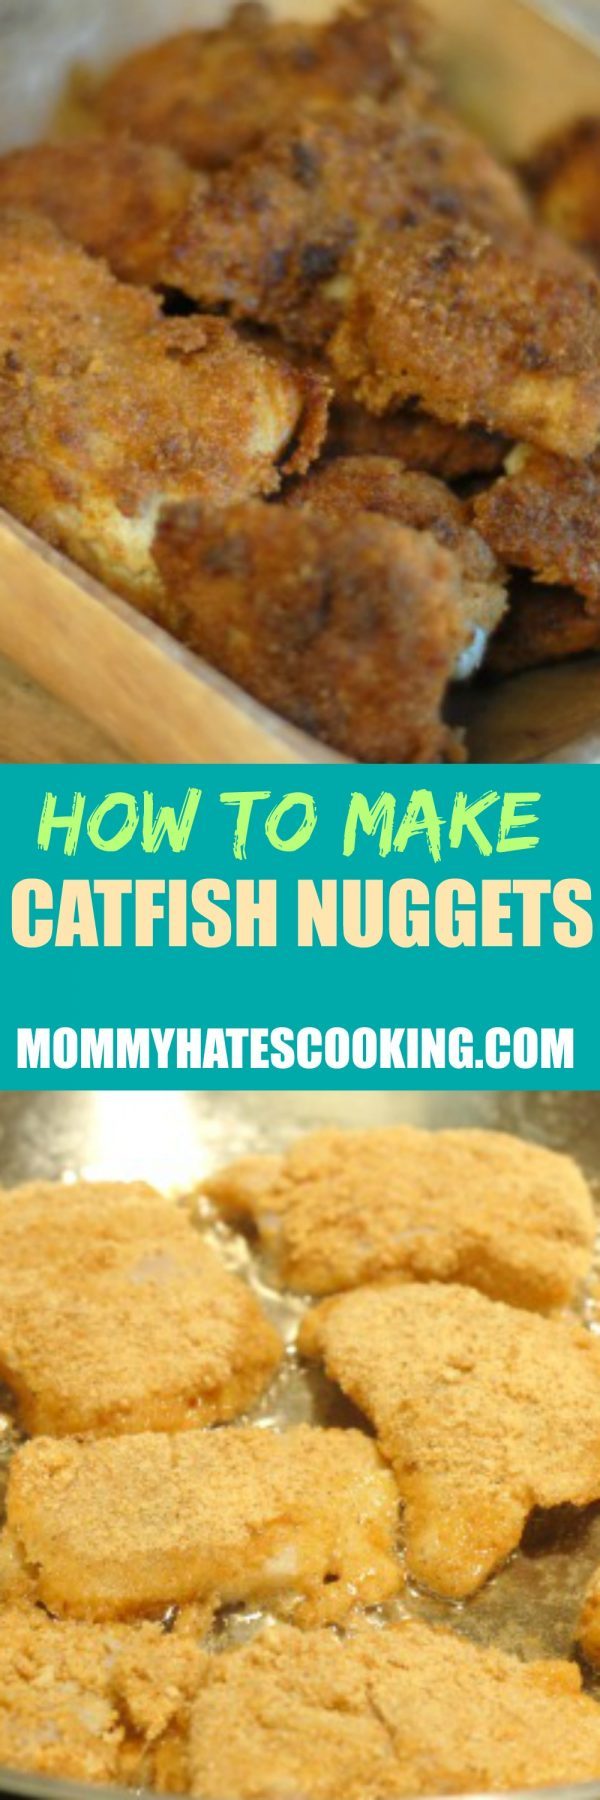 How to Make Catfish Nuggets